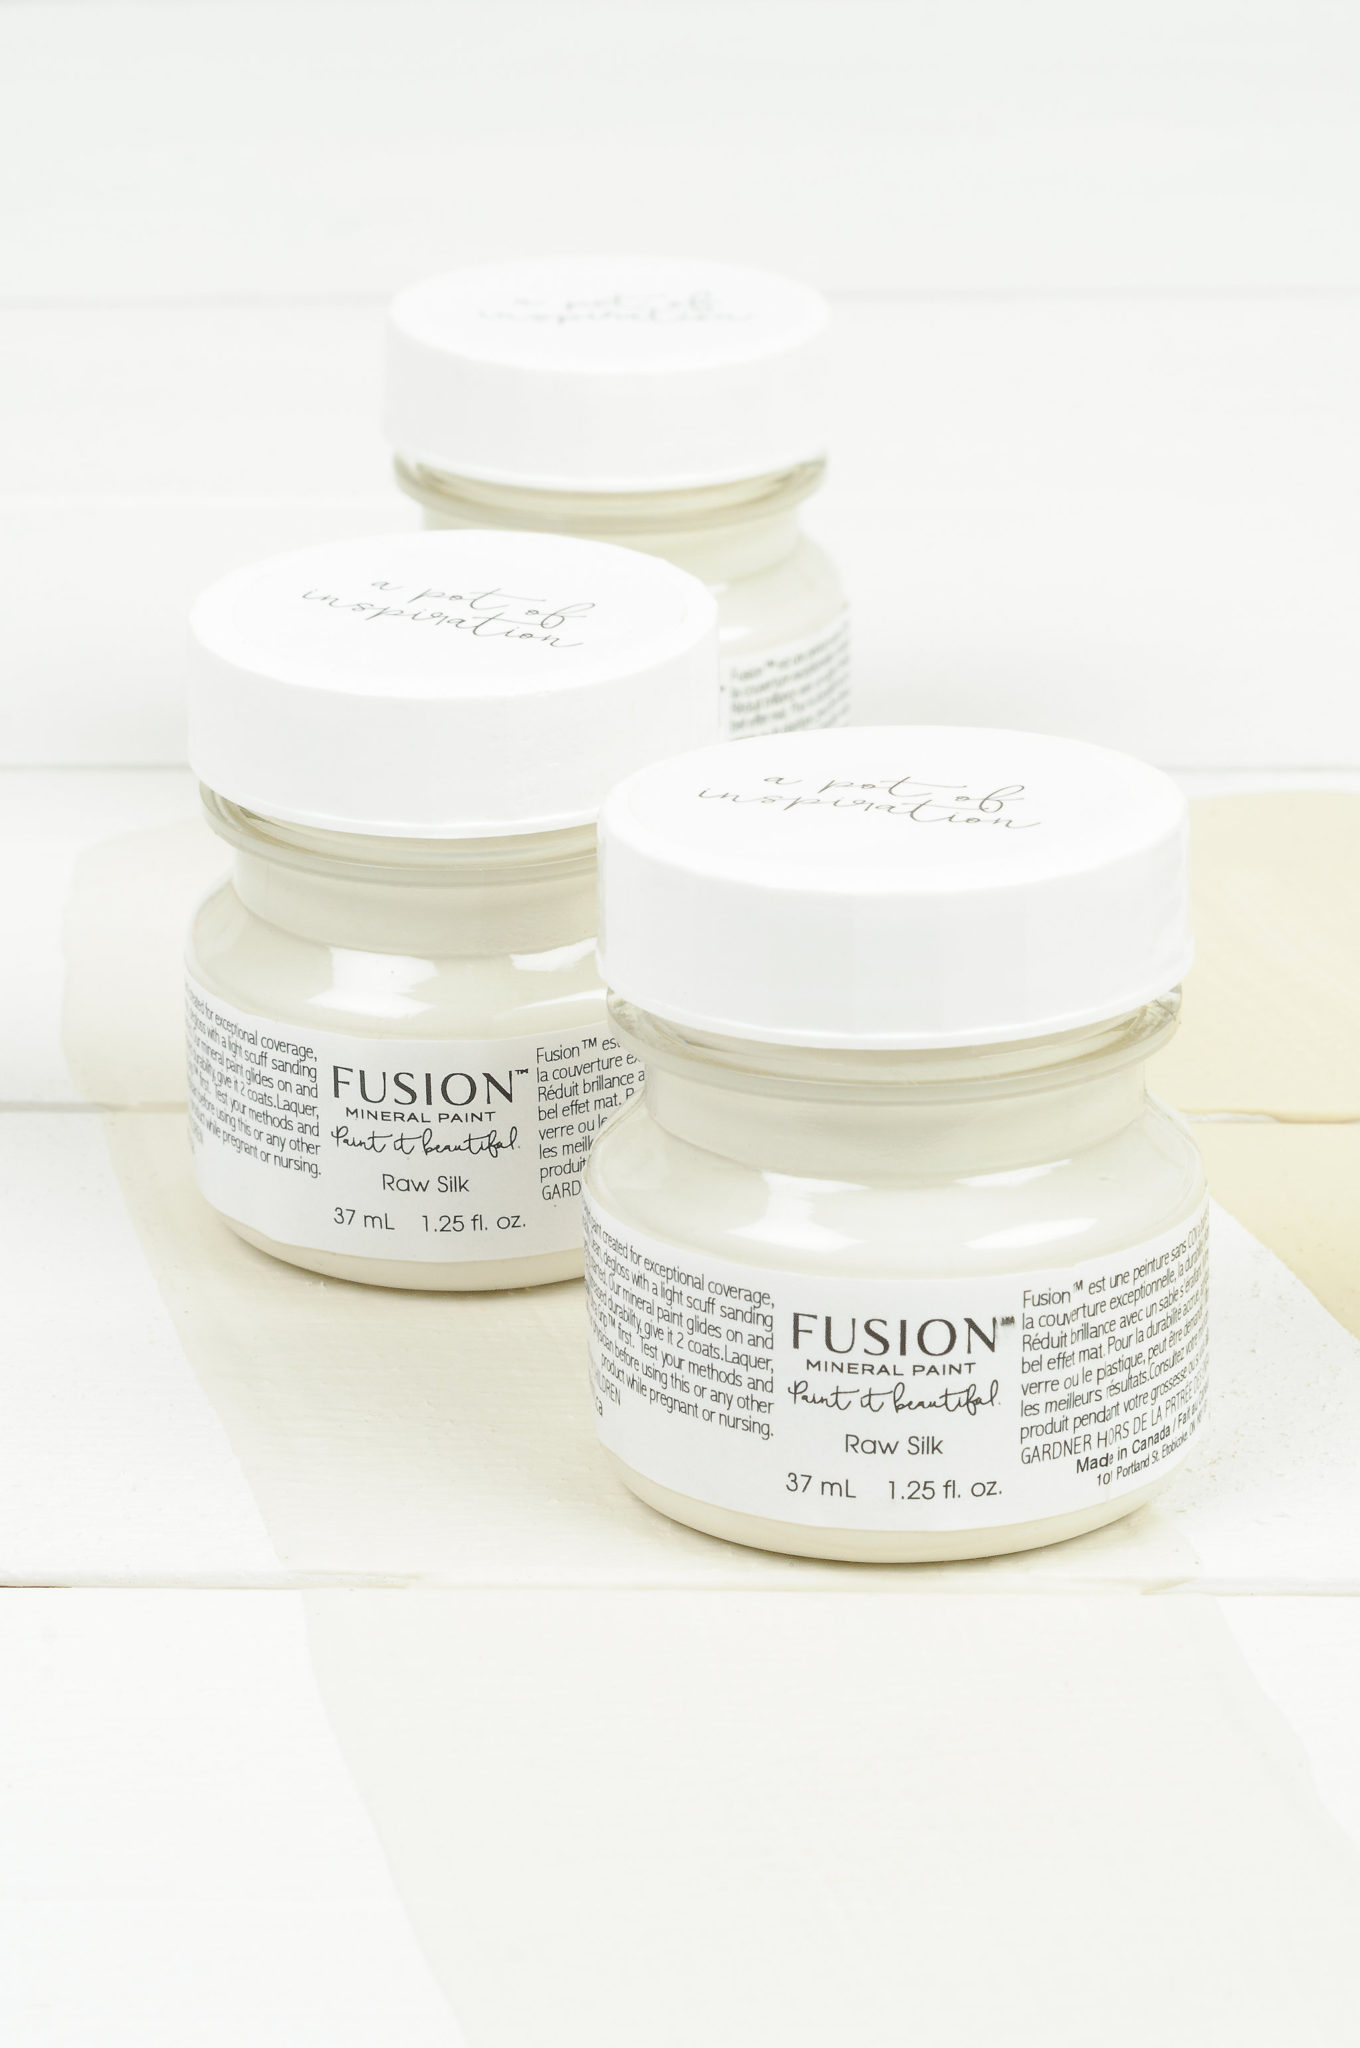 Raw Silk tester fusion mineral paint